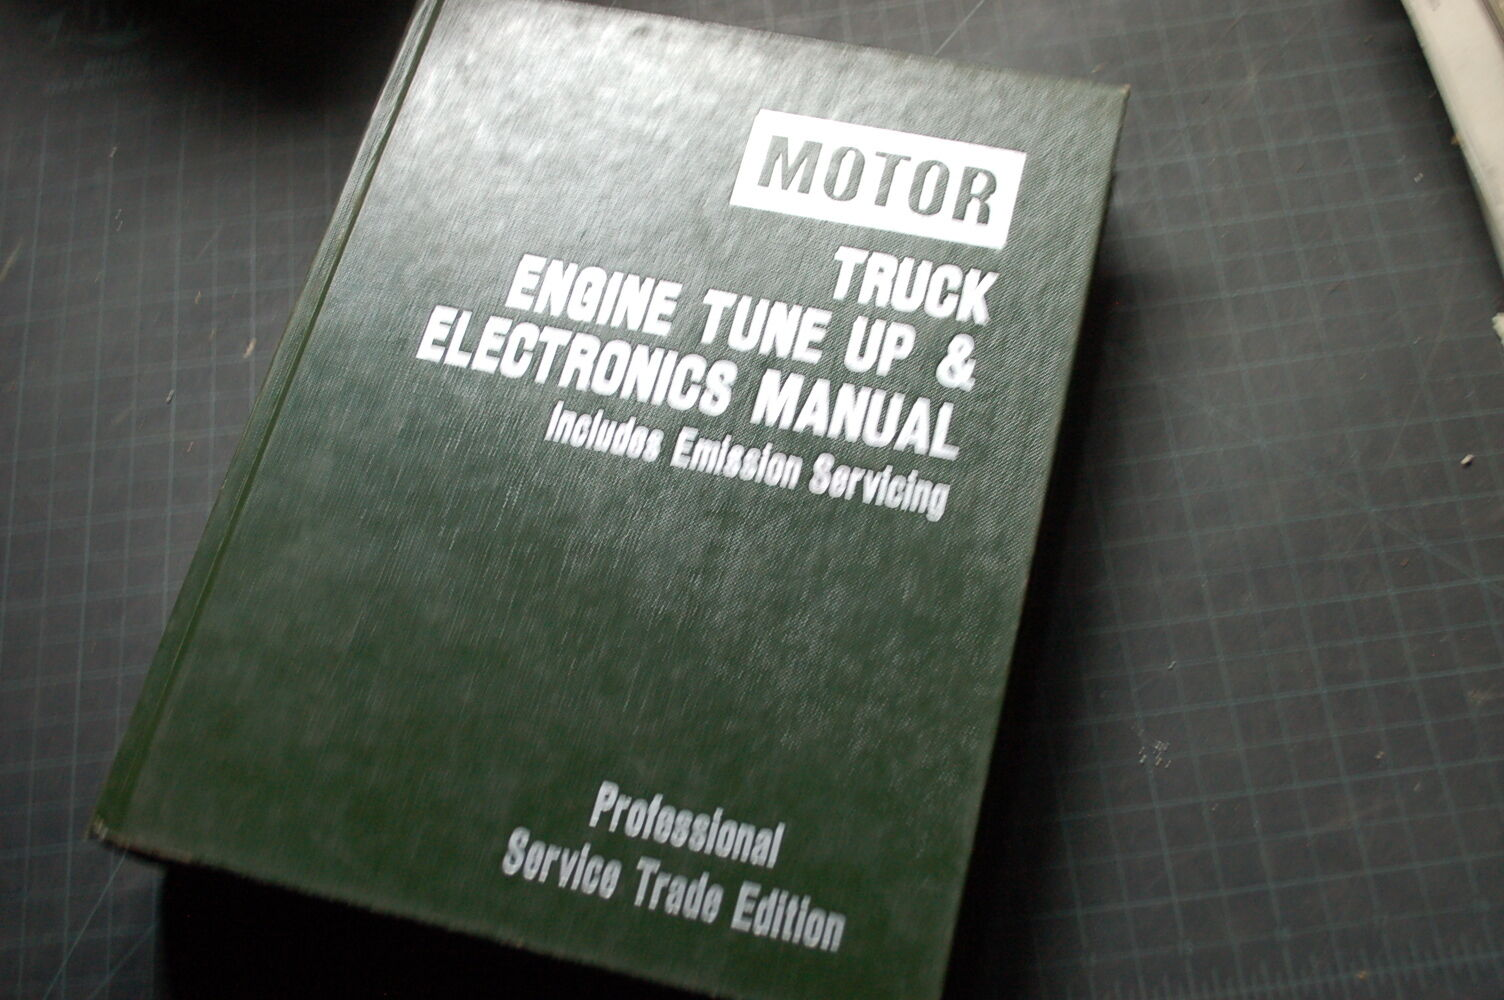 MOTOR TRUCK DIESEL Engine Tune-Up Electronics Repair Shop Service Manual  book 1 of 6Only 1 available ...